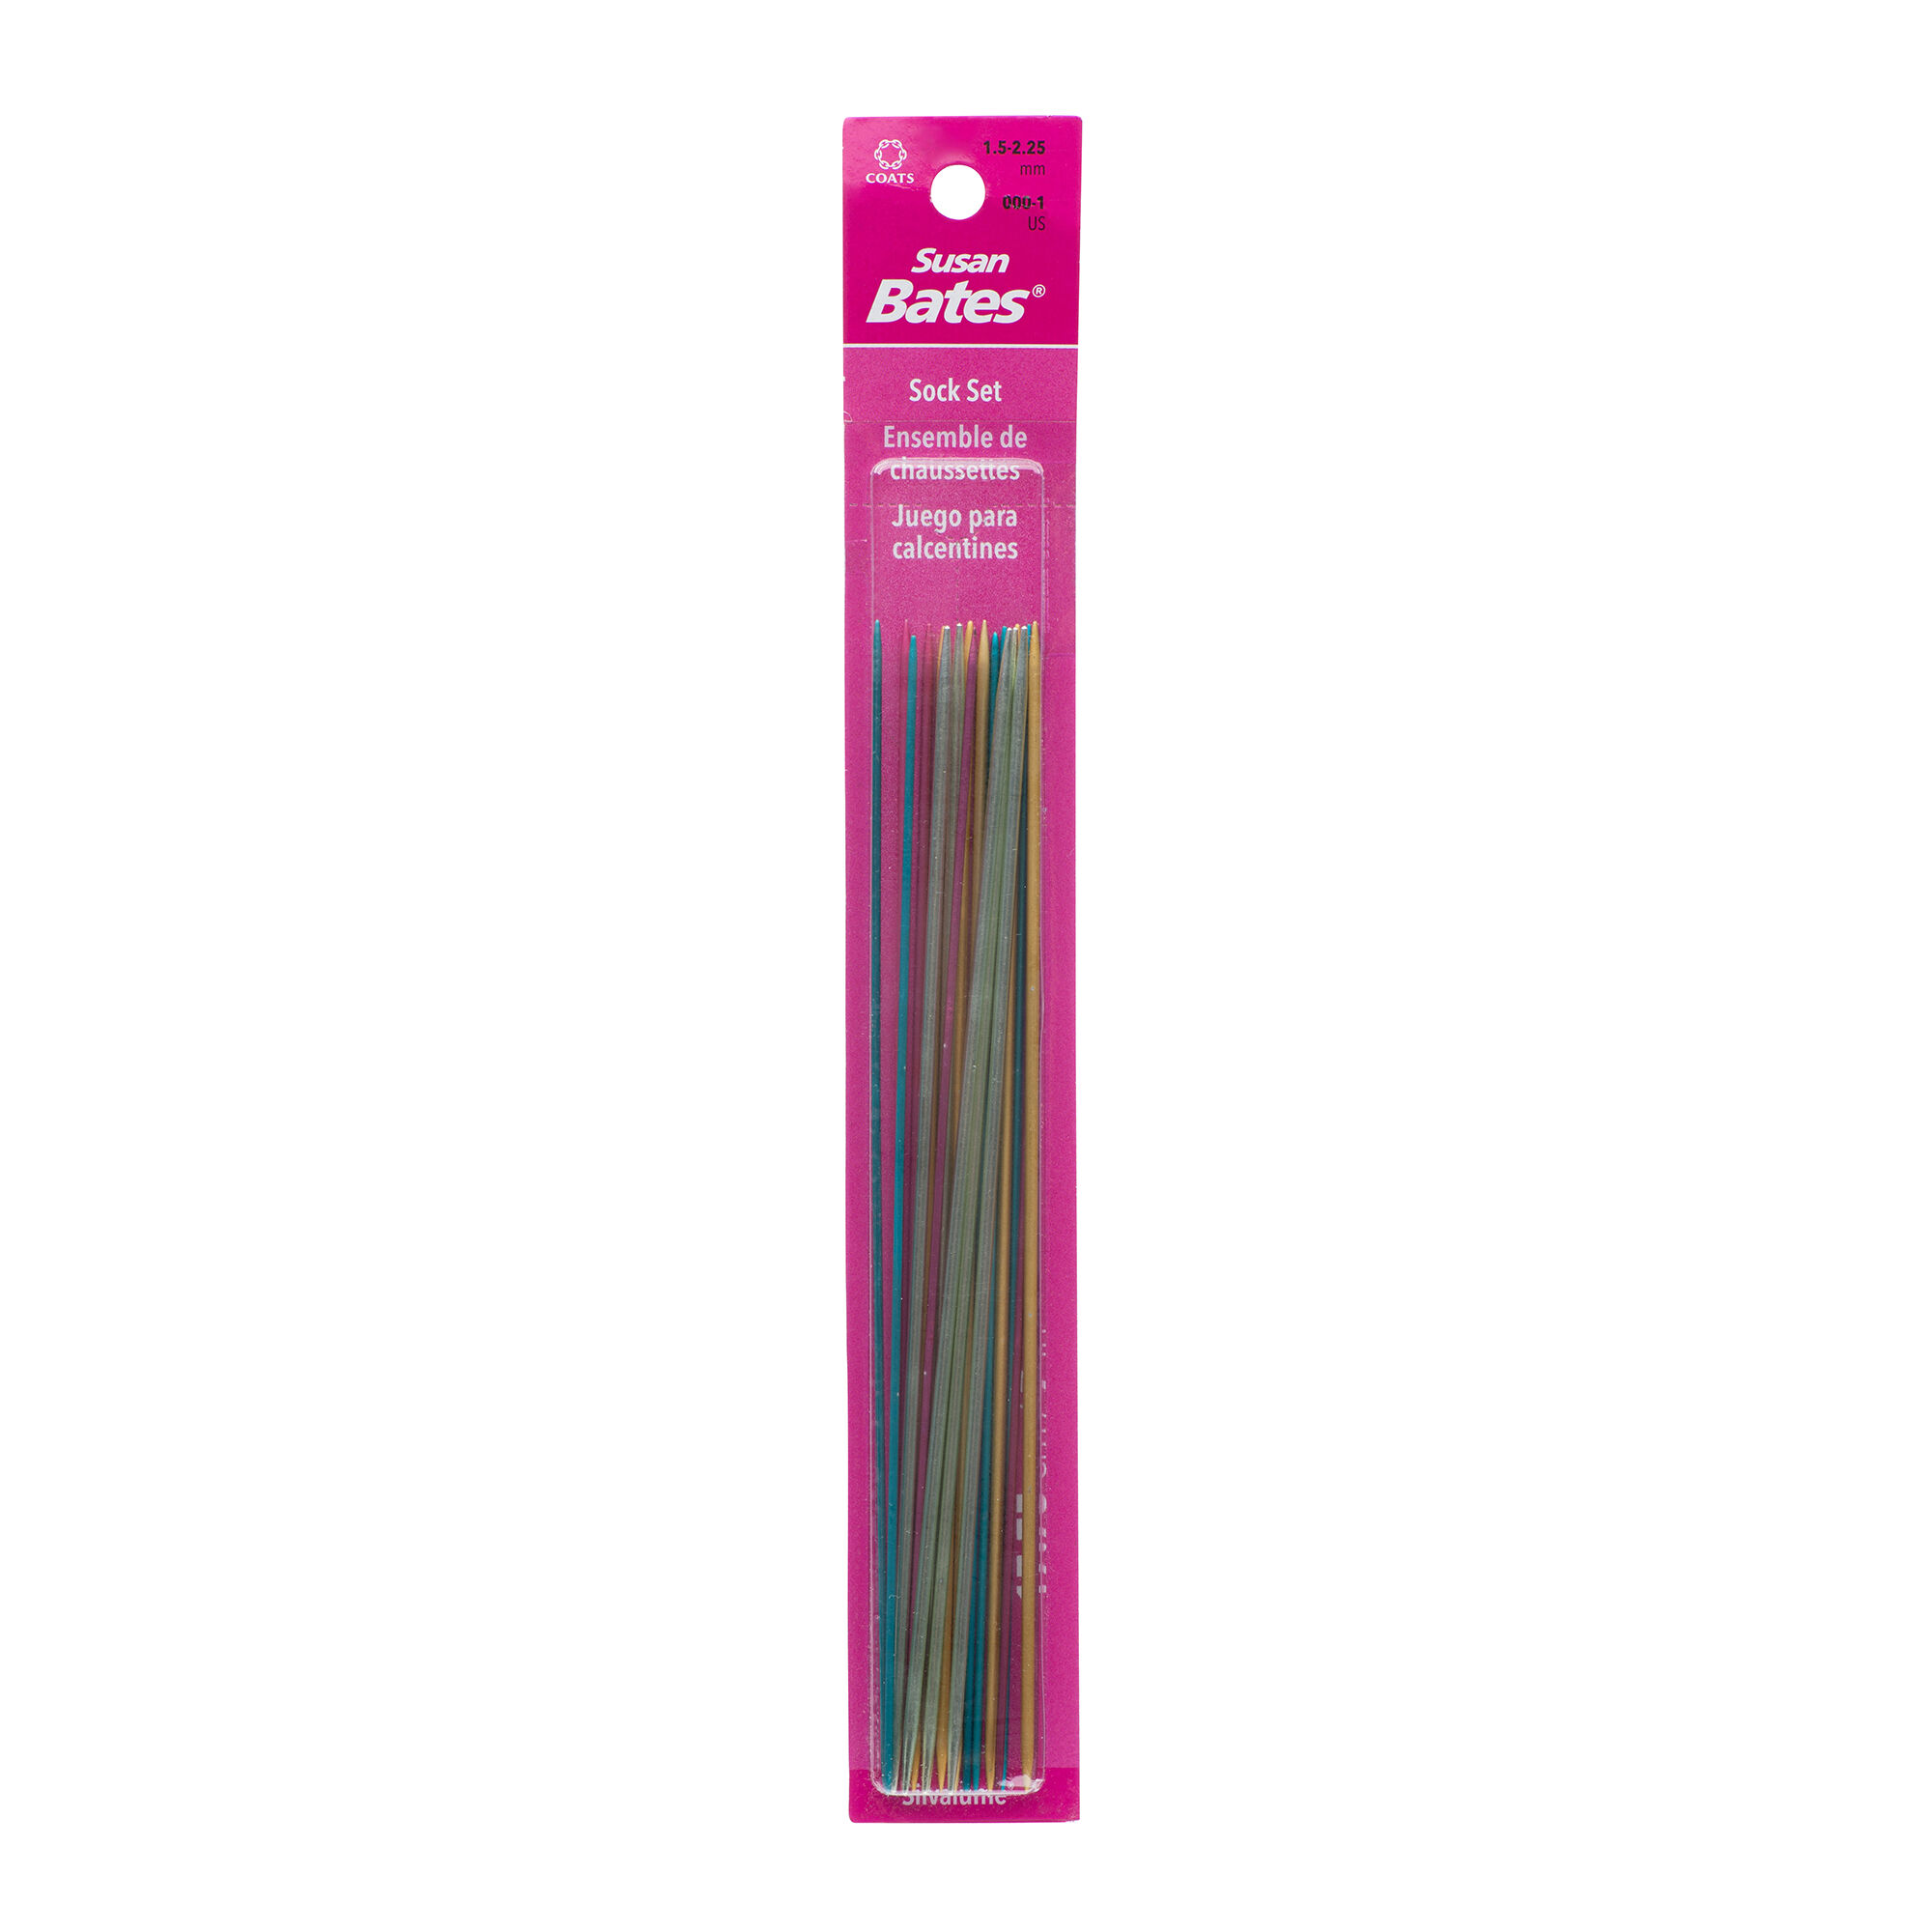 SUSAN BATES SIZE 000 1.5 MM DOUBLE POINT KNITTING NEEDLES